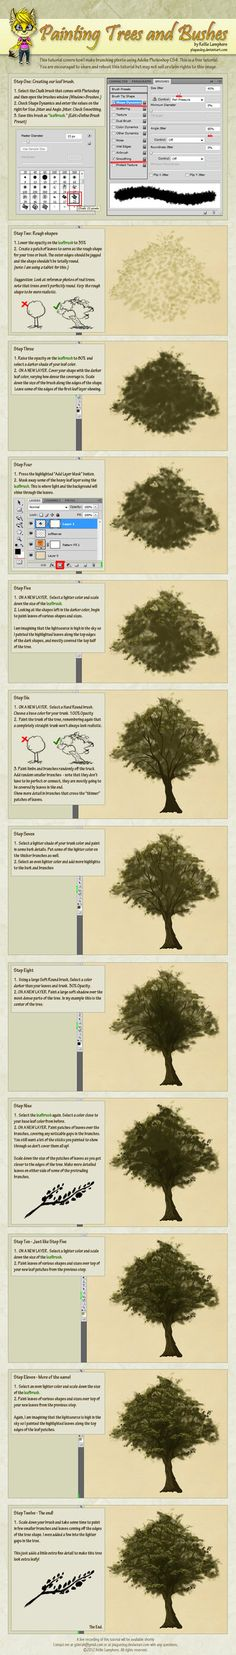 How to Digitally Paint Trees and Bushes Tutorial by *Plaguedog on deviantART